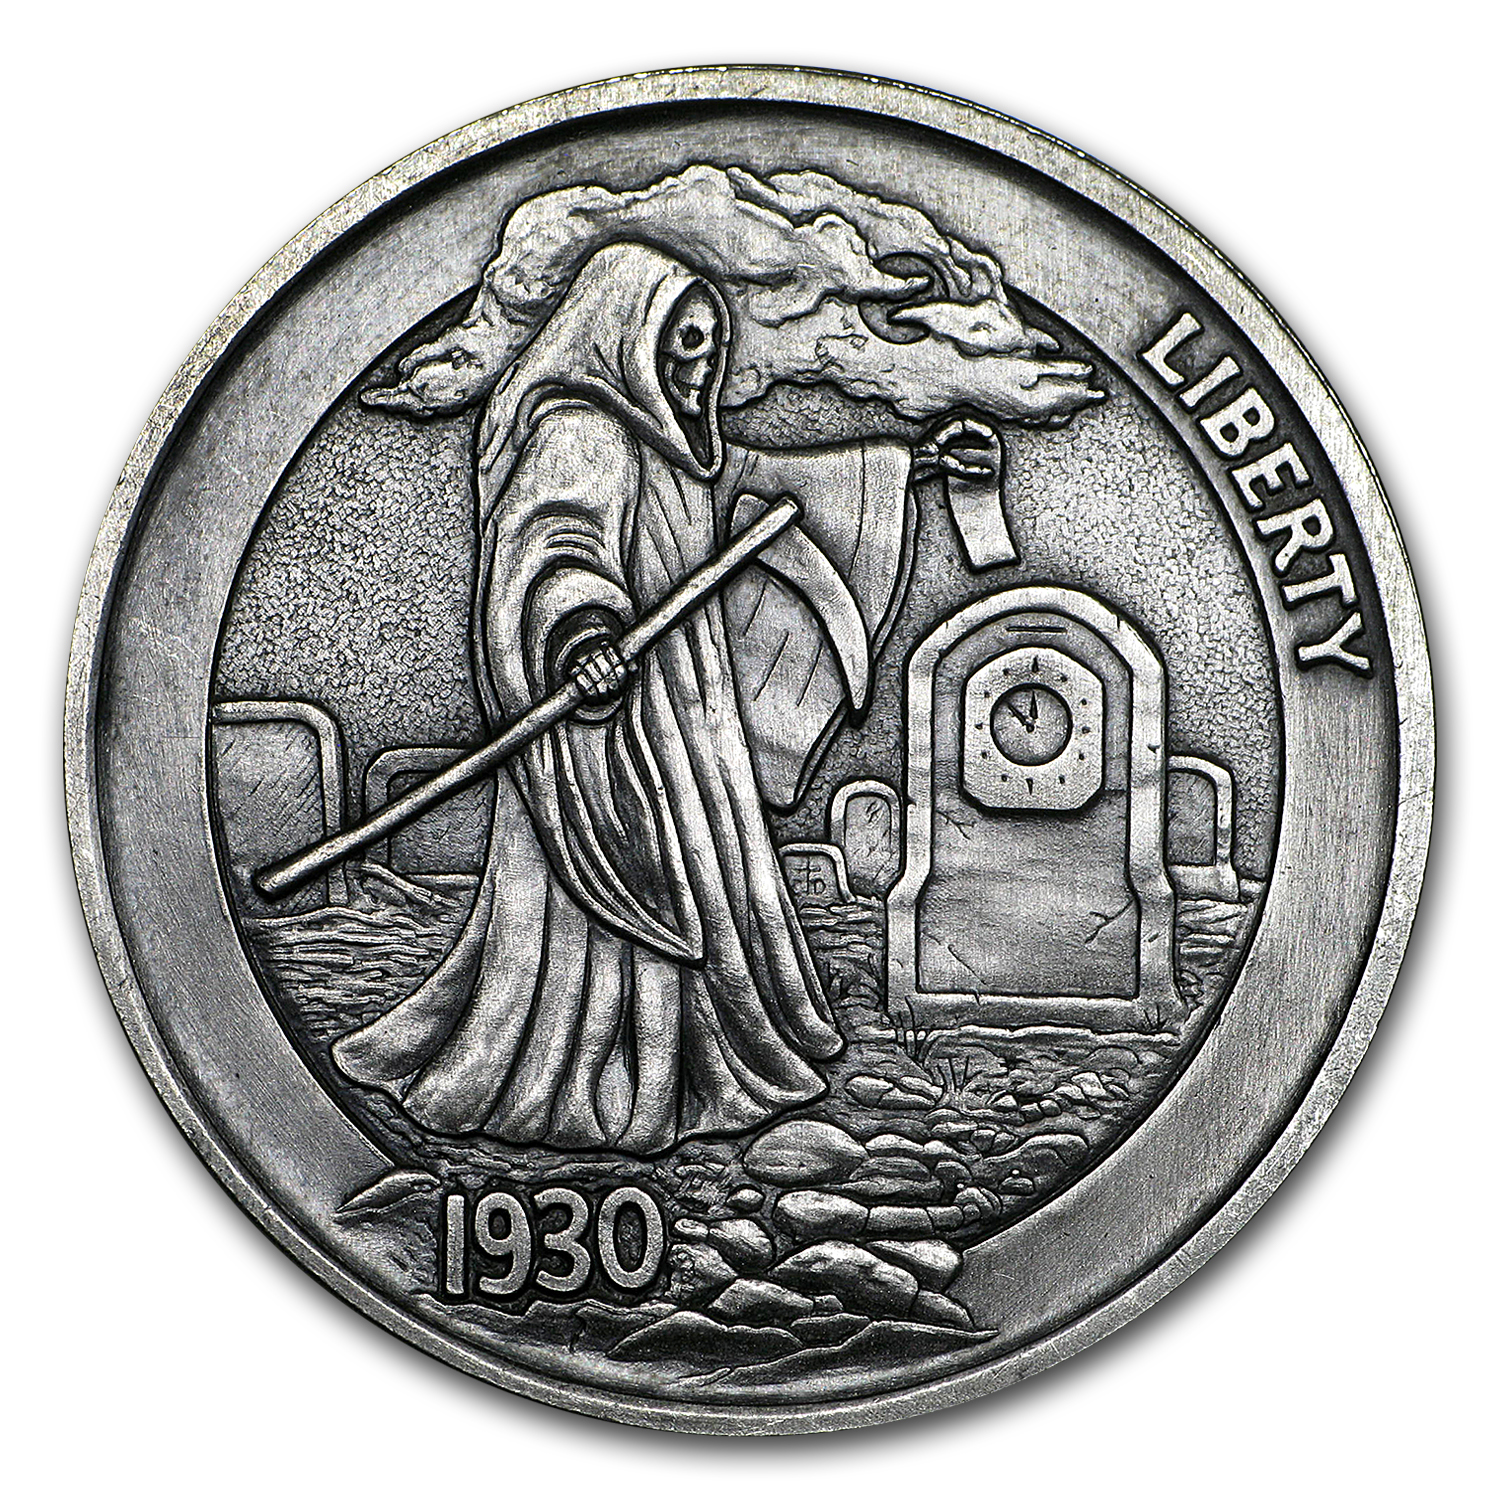 1 oz Silver Antique Hobo Nickel (Graveyard Shift)